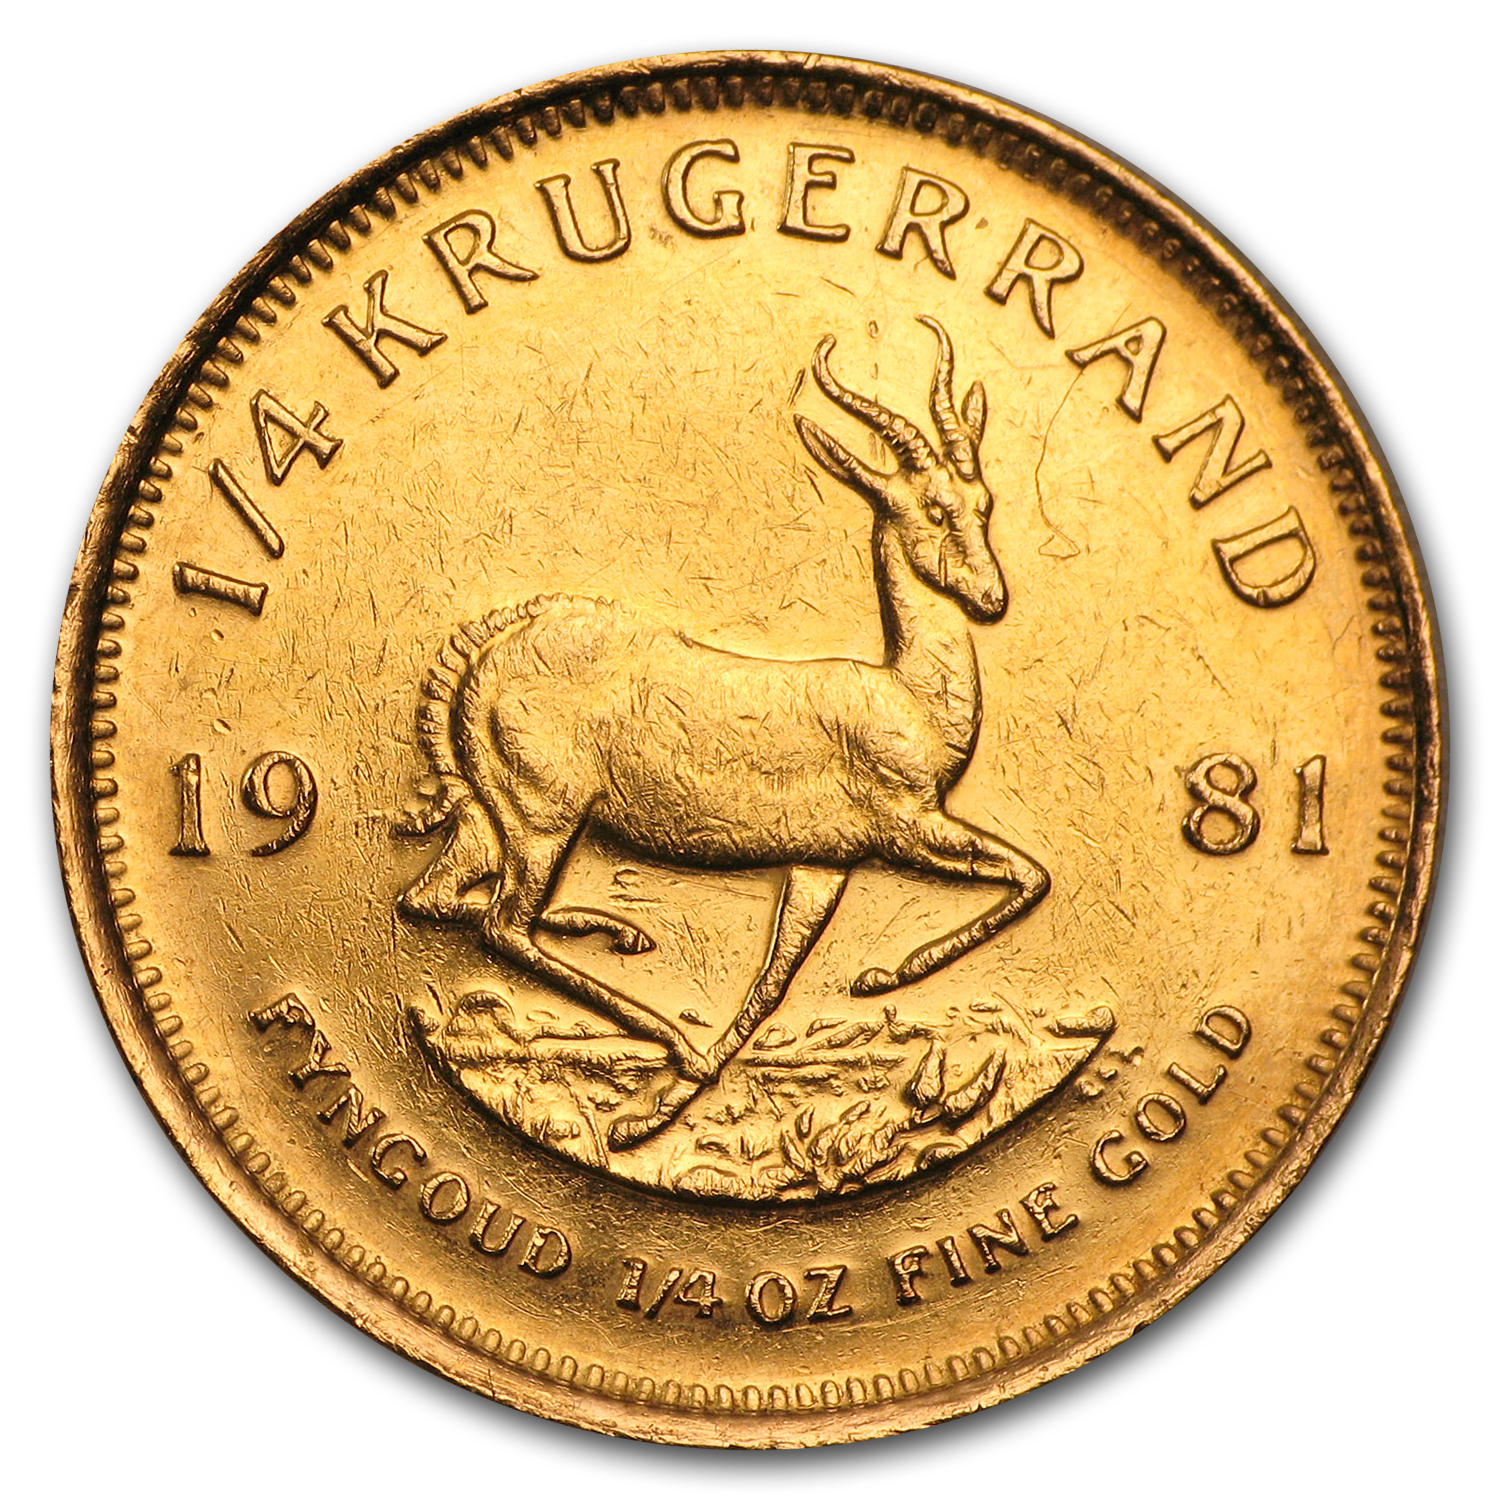 1/4 oz Gold South African Krugerrand (Abrasions)